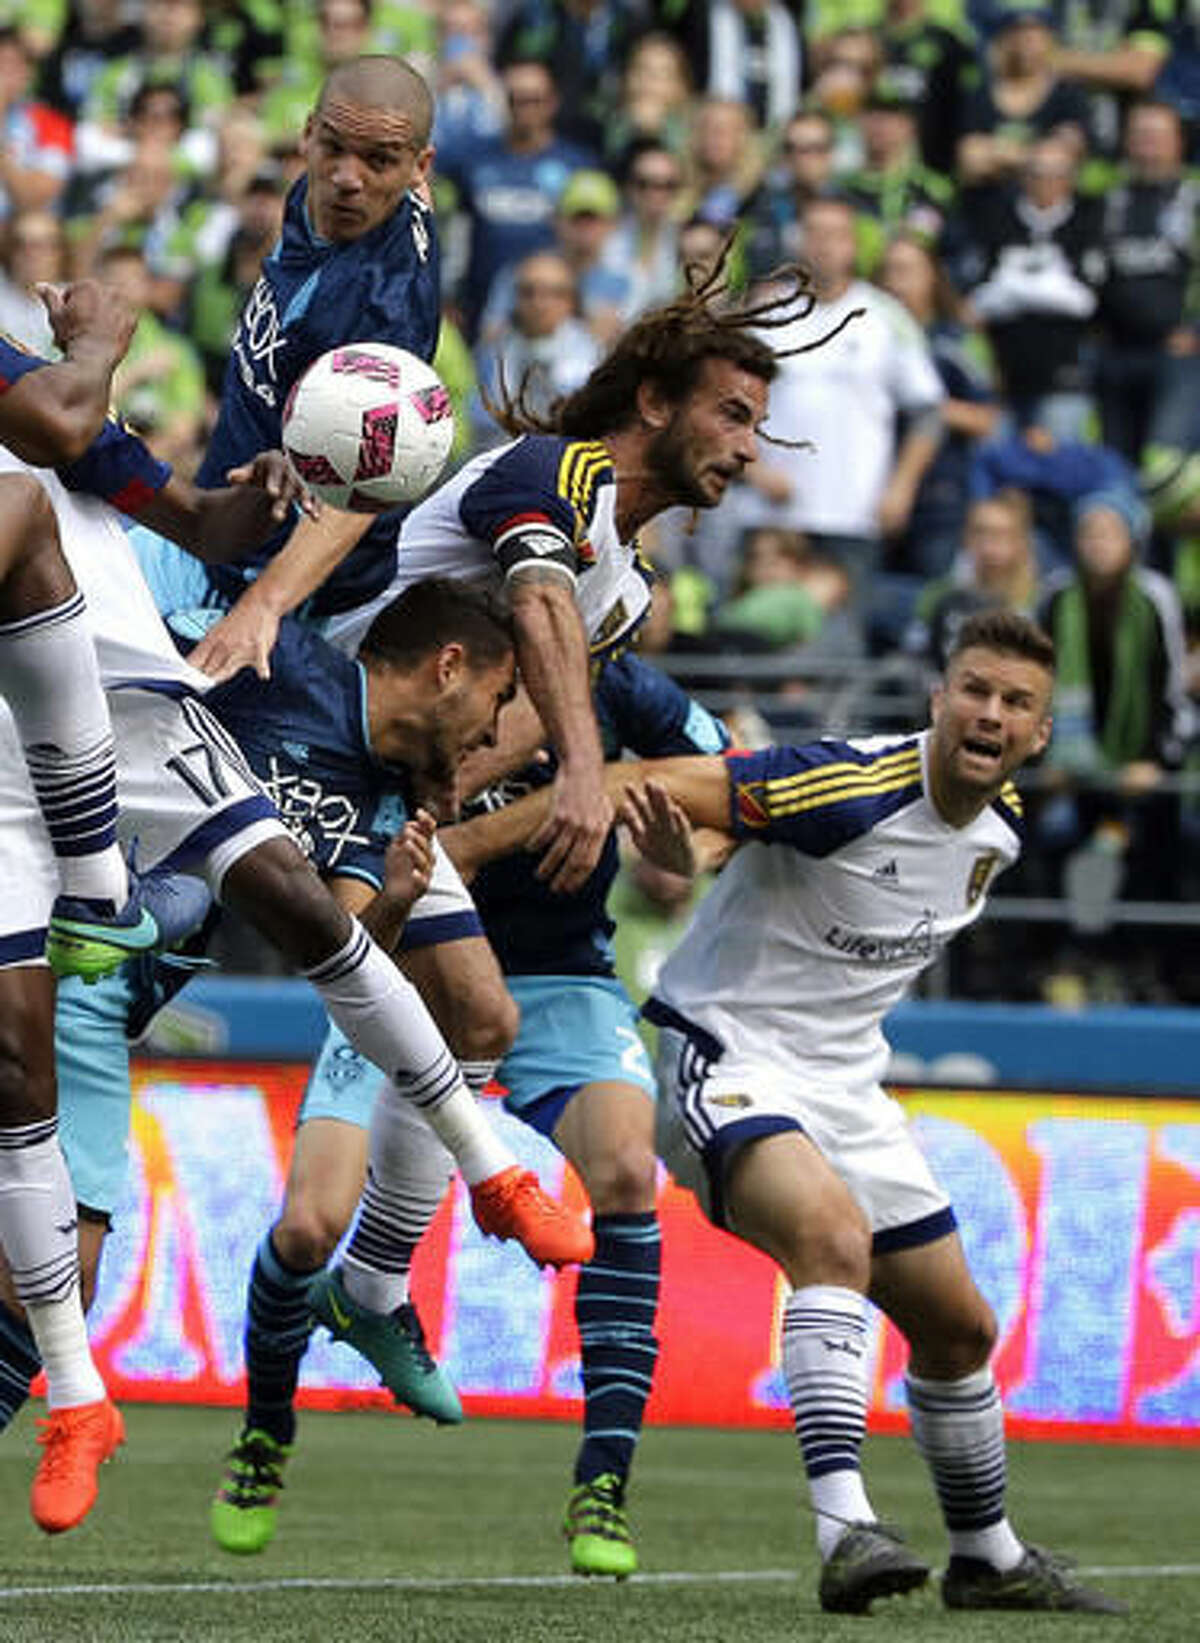 Seattle Sounders midfielder Osvaldo Alonso, upper left, and Real Salt Lake midfielder Kyle Beckerman, upper right, battle for the ball, Sunday, Oct. 23, 2016, in the first half of an MLS soccer match in Seattle. (AP Photo/Ted S. Warren)